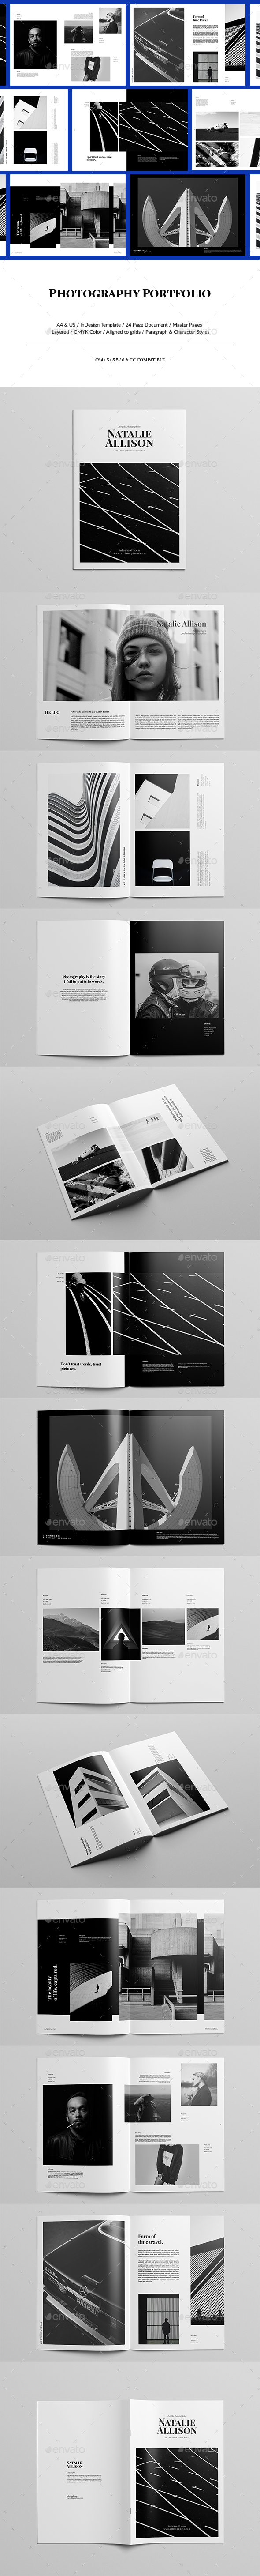 Minimal Photography Portfolio by Bervisual | GraphicRiver